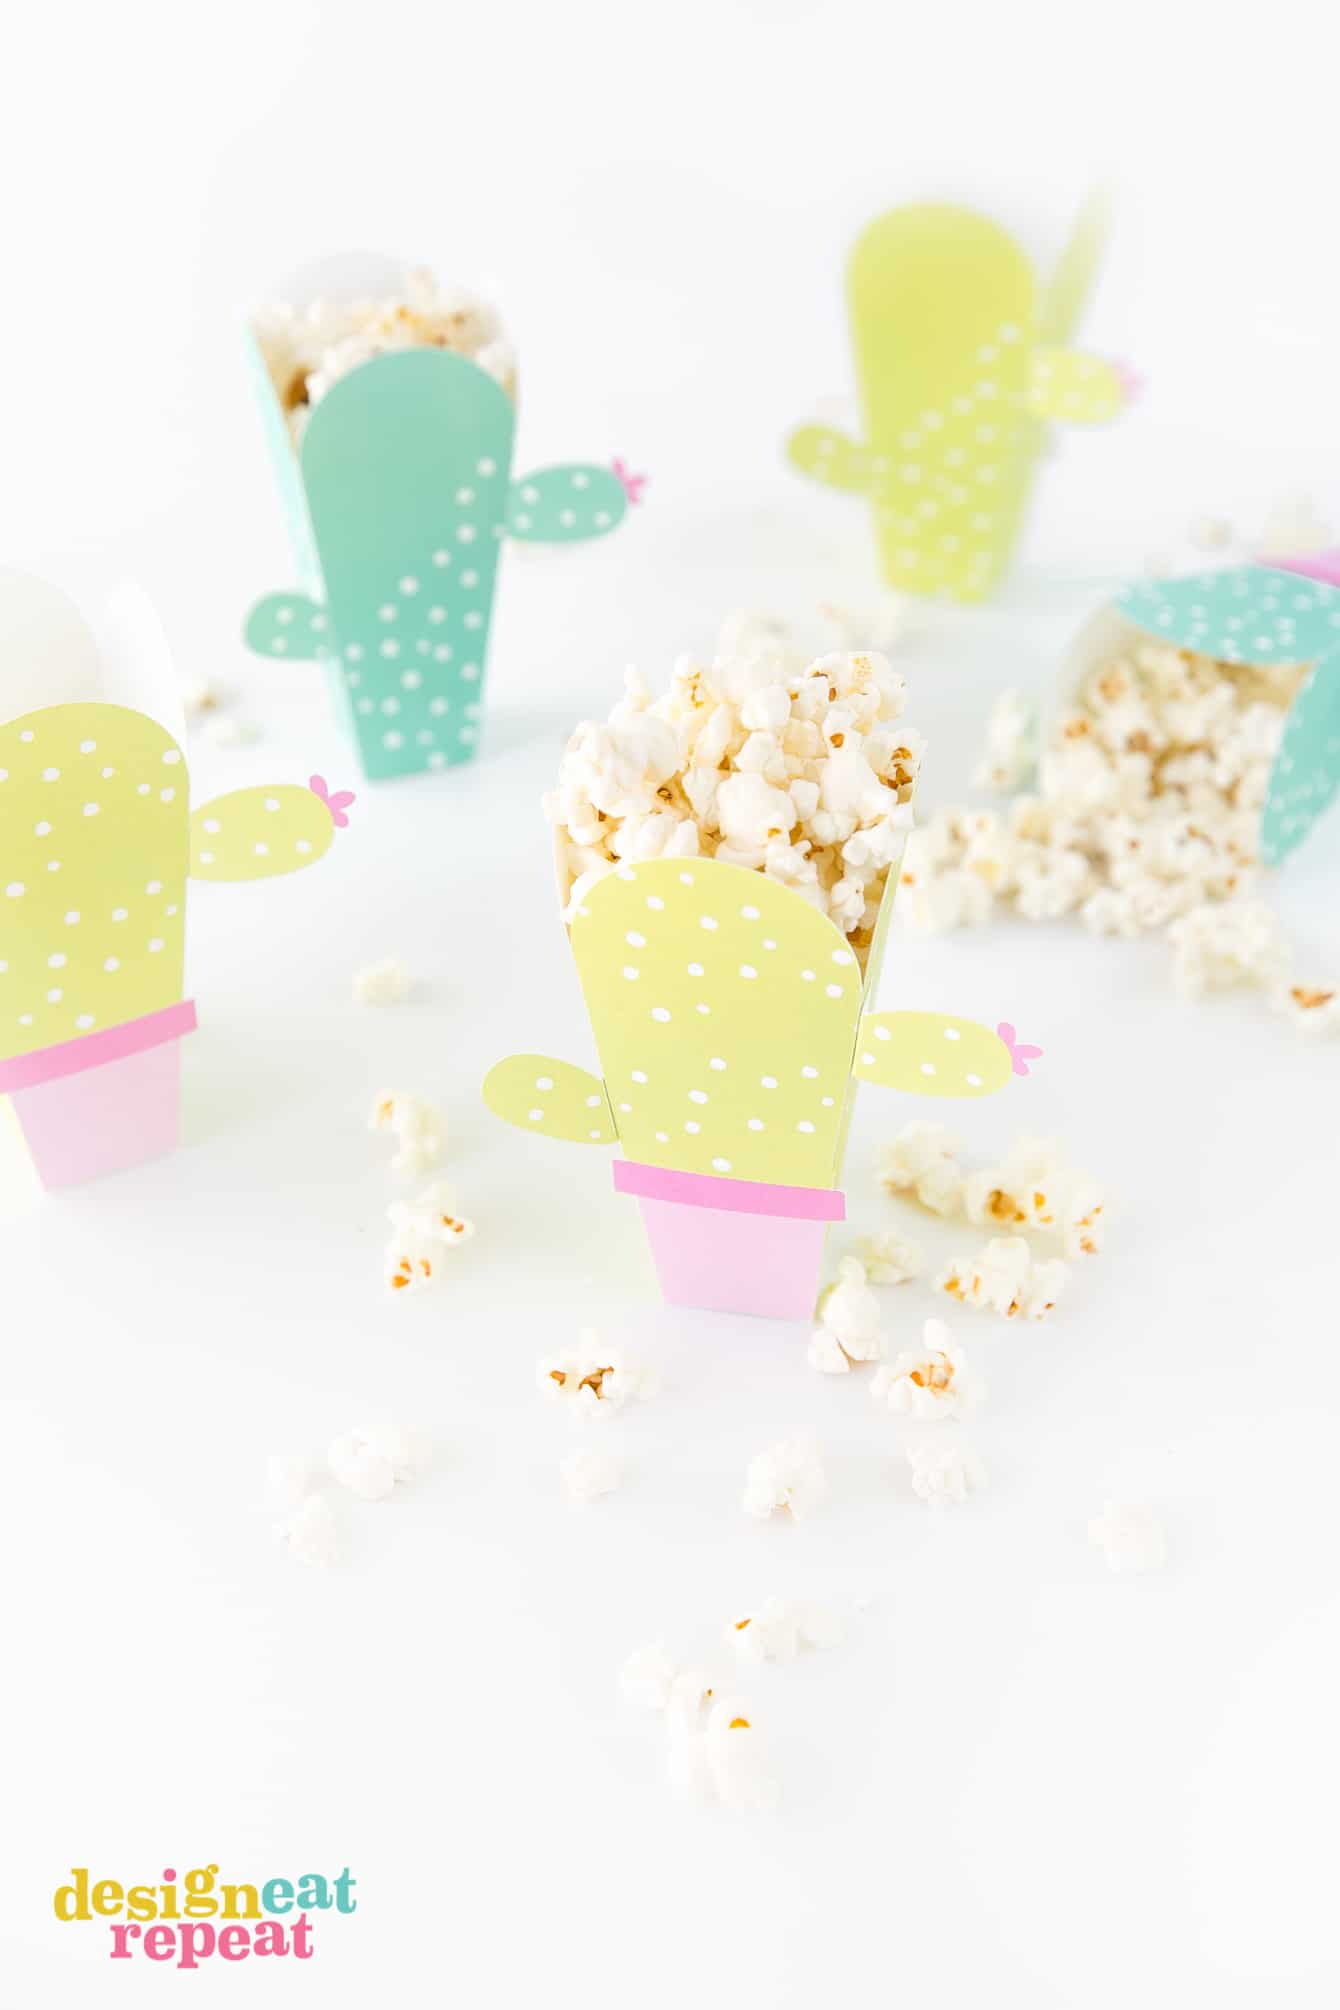 photo about Printable Popcorn Template identified as Printable Cactus Popcorn Box Template - Layout Consume Repeat